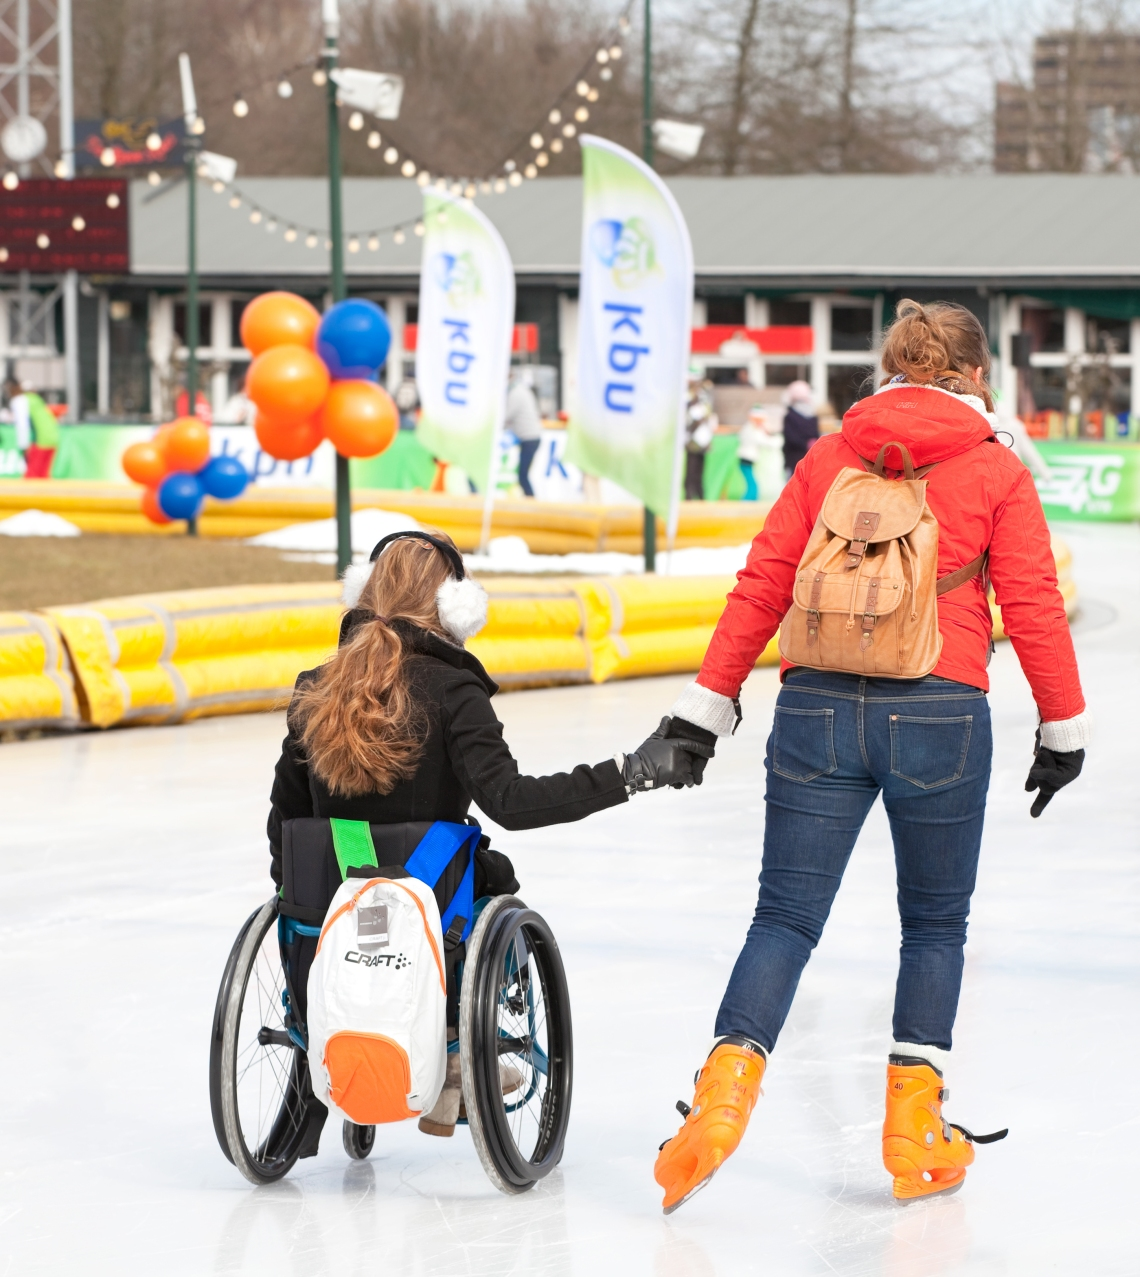 two-women-one-in-wheelchair-ice-skating